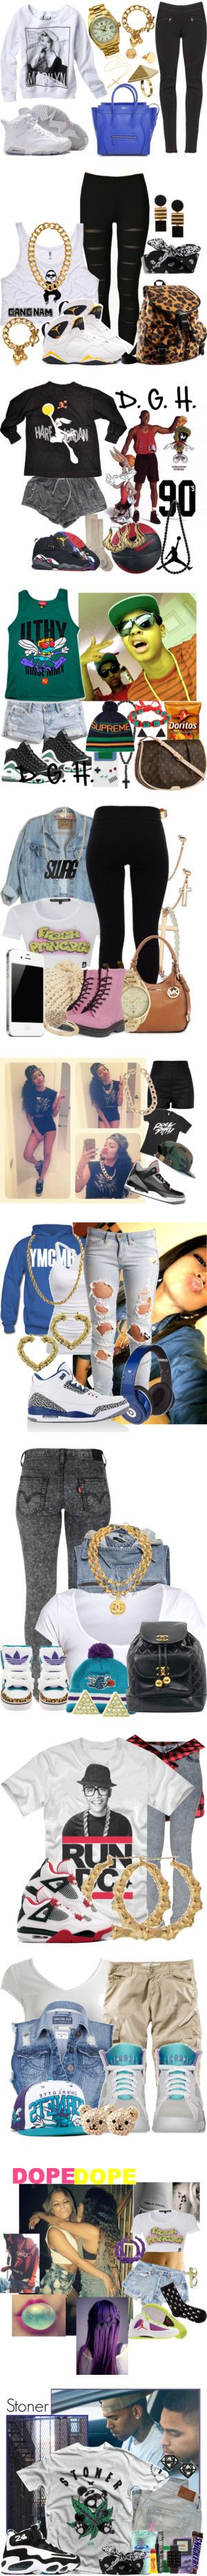 """""""swagg got chu"""" by calichica ❤ liked on Polyvore"""